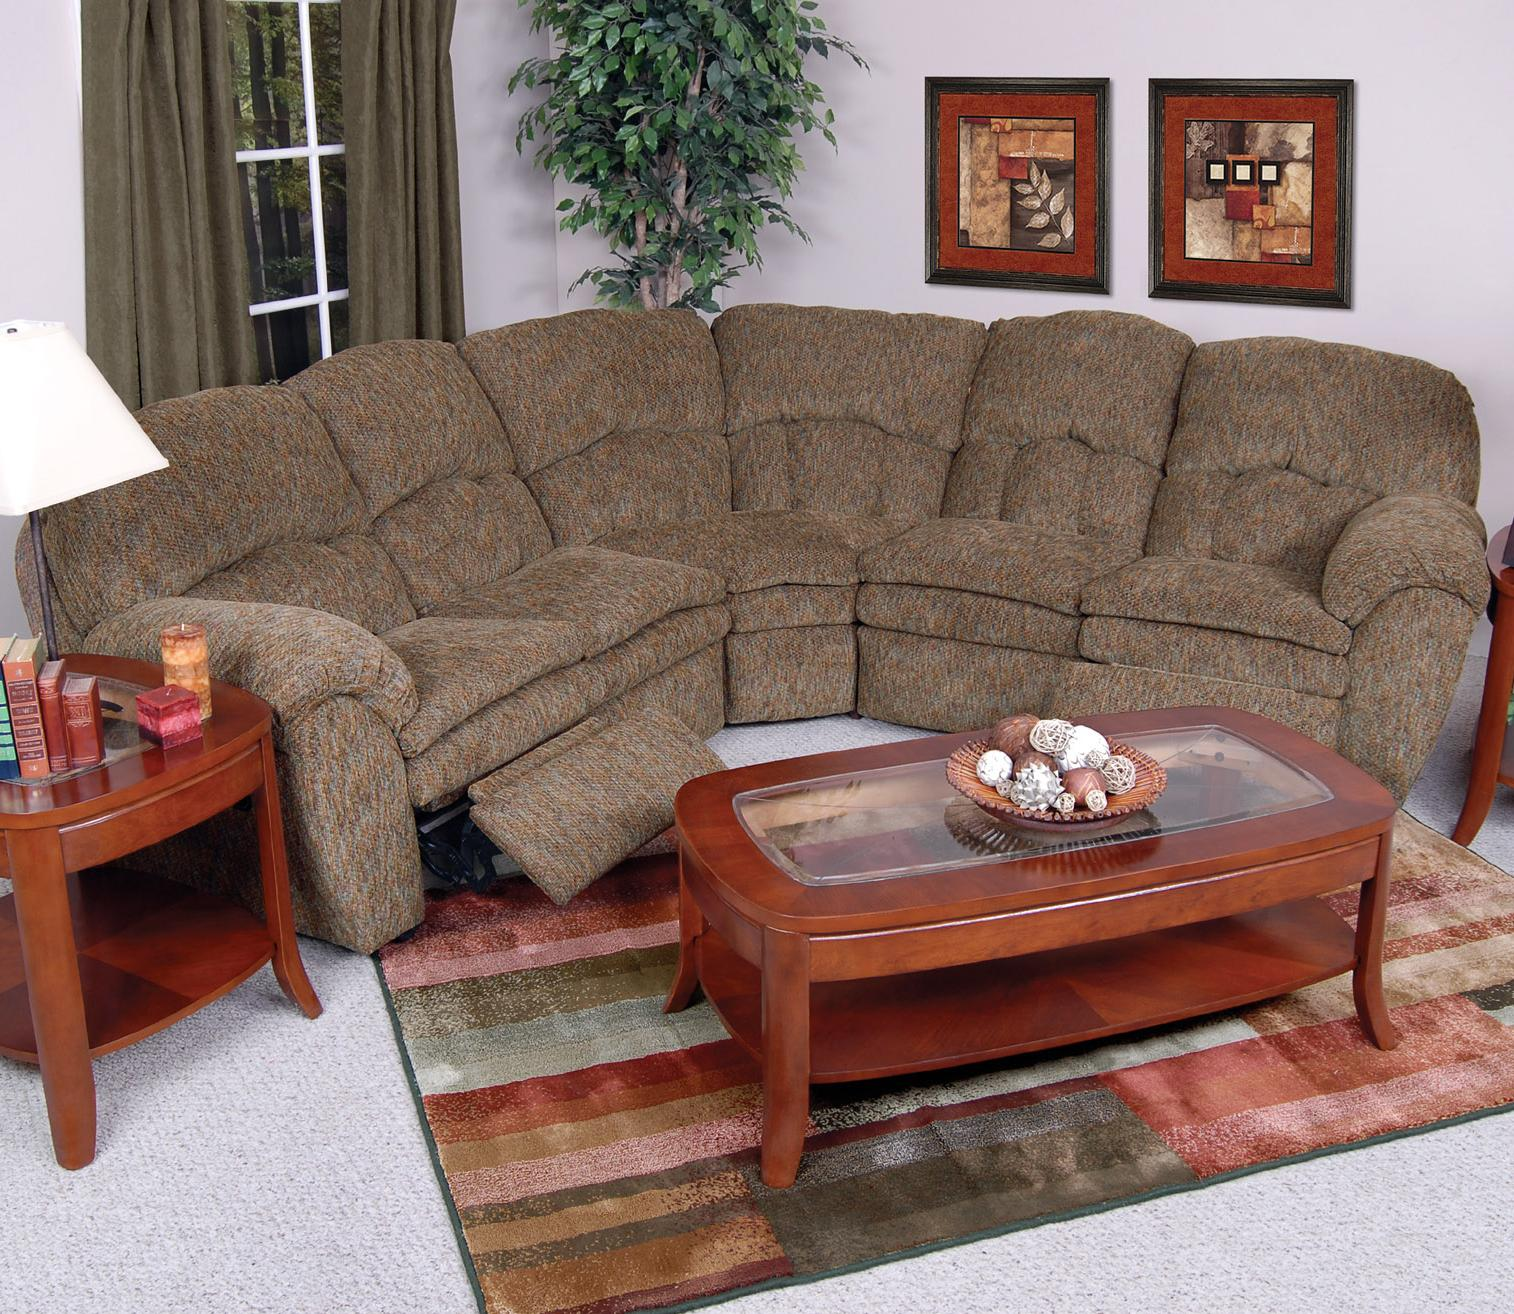 England Oakland 720022 59 60 Upholstered Reclining Sectional Furniture And Appliancemart